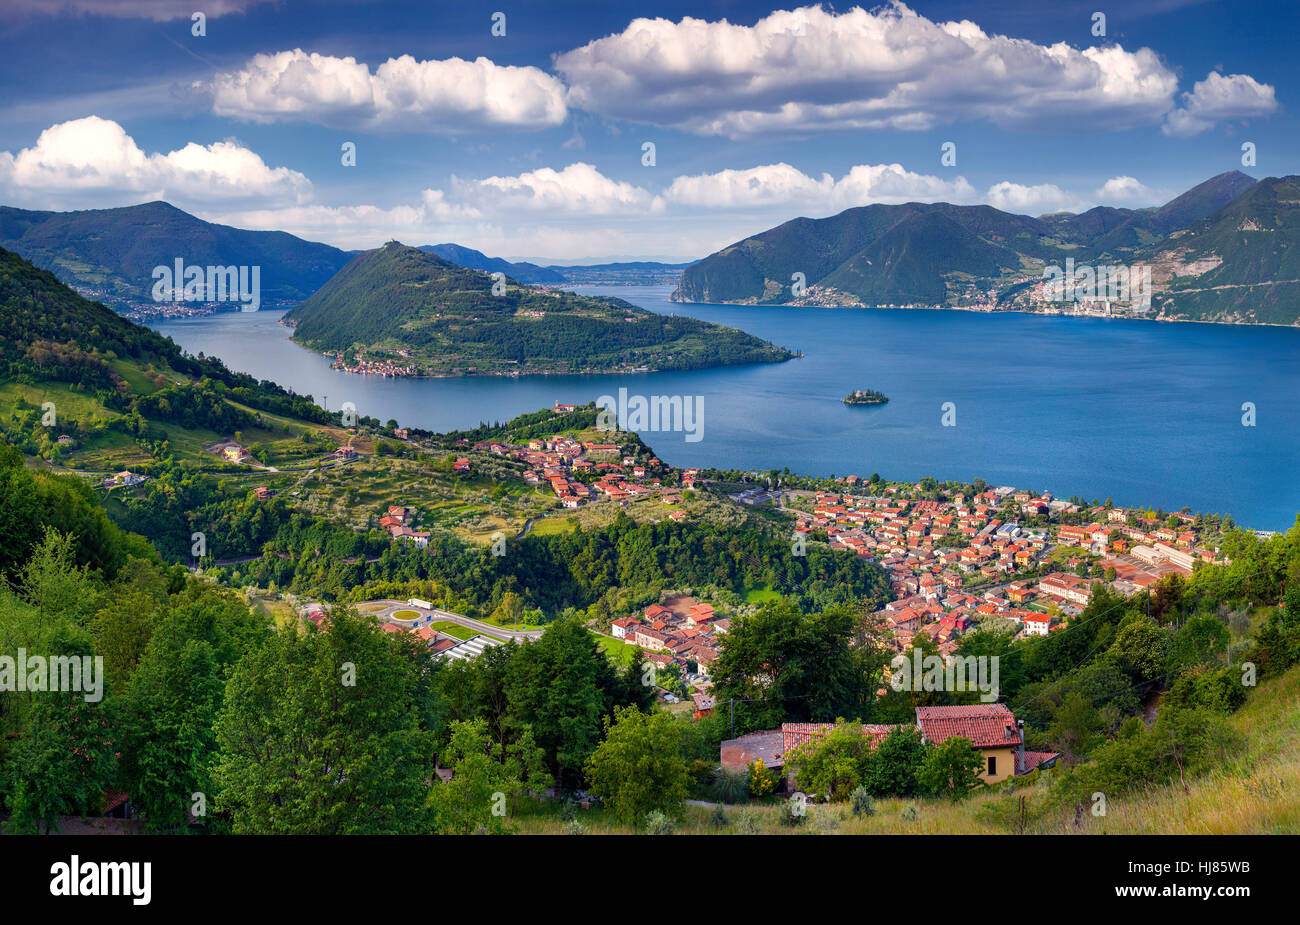 View of the city Marone, a bright sunny day. Italy, the Alps, Lake Iseo. - Stock Image